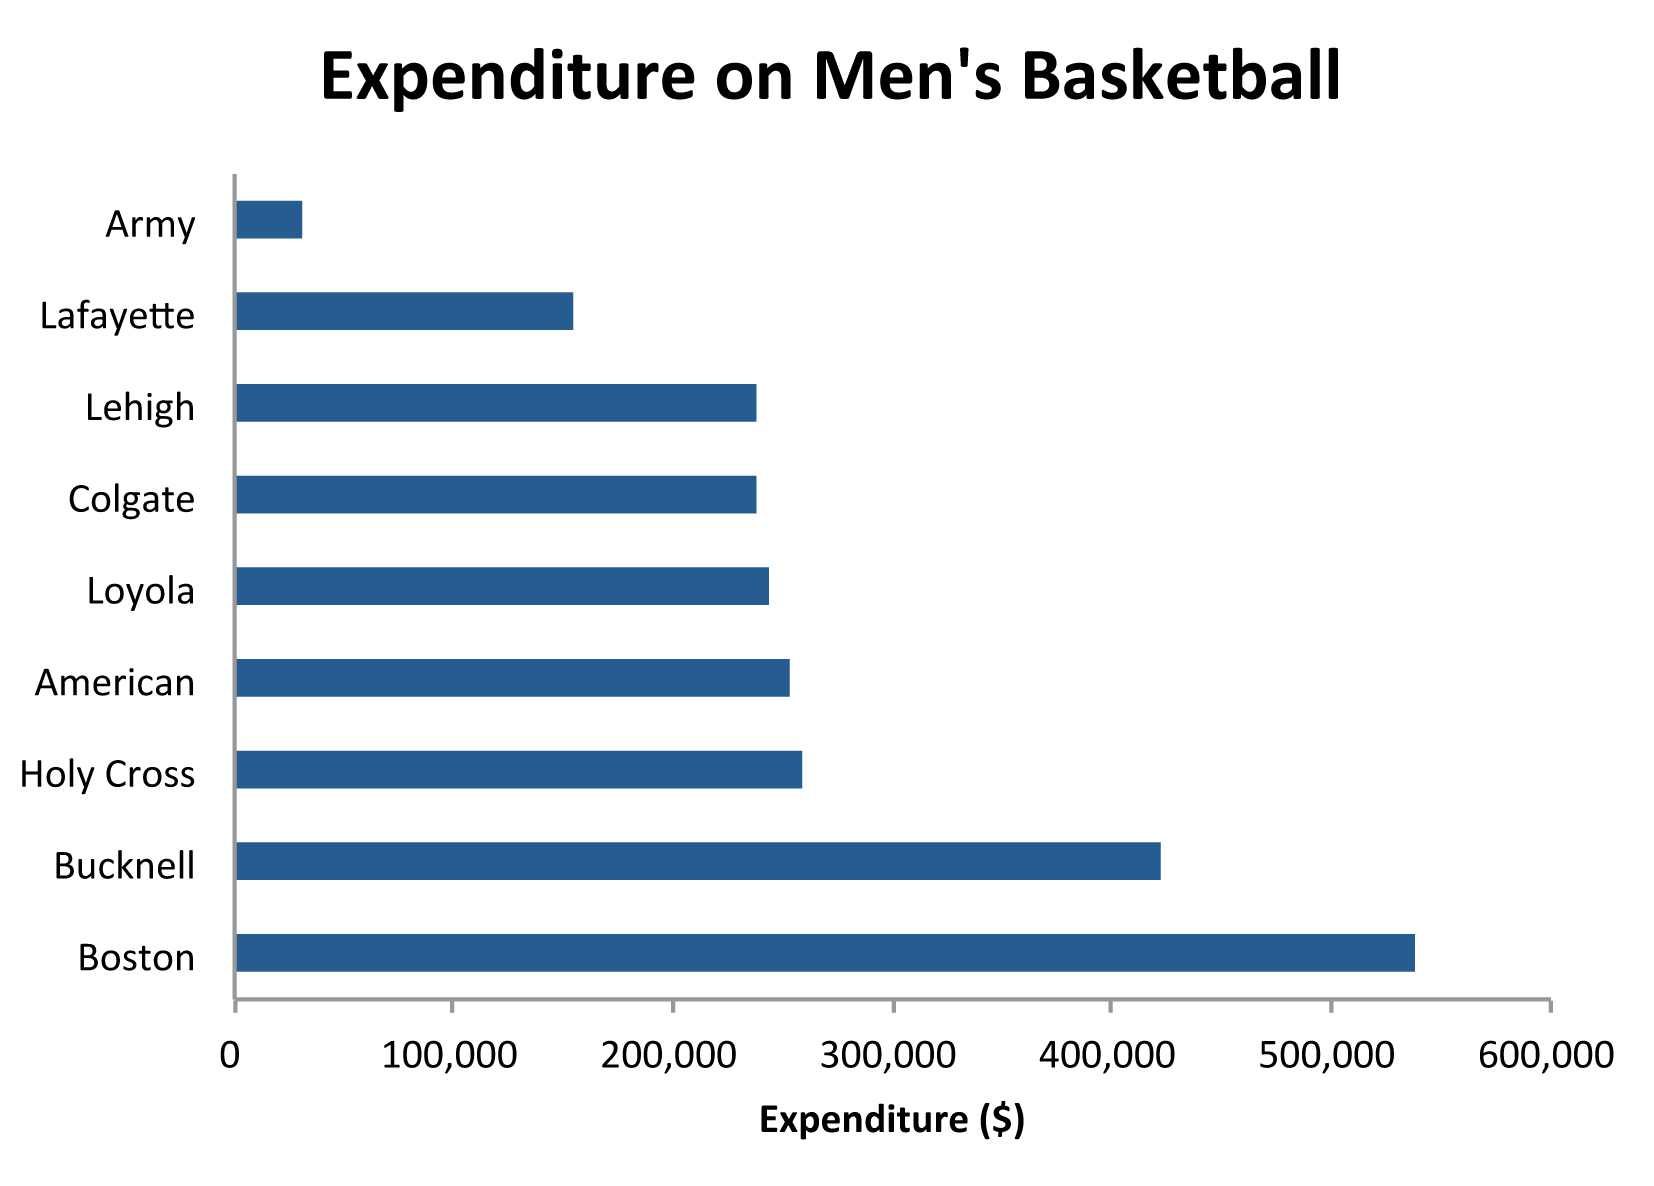 The graph above shows total expenditure on men's basketball for Patriot League schools.